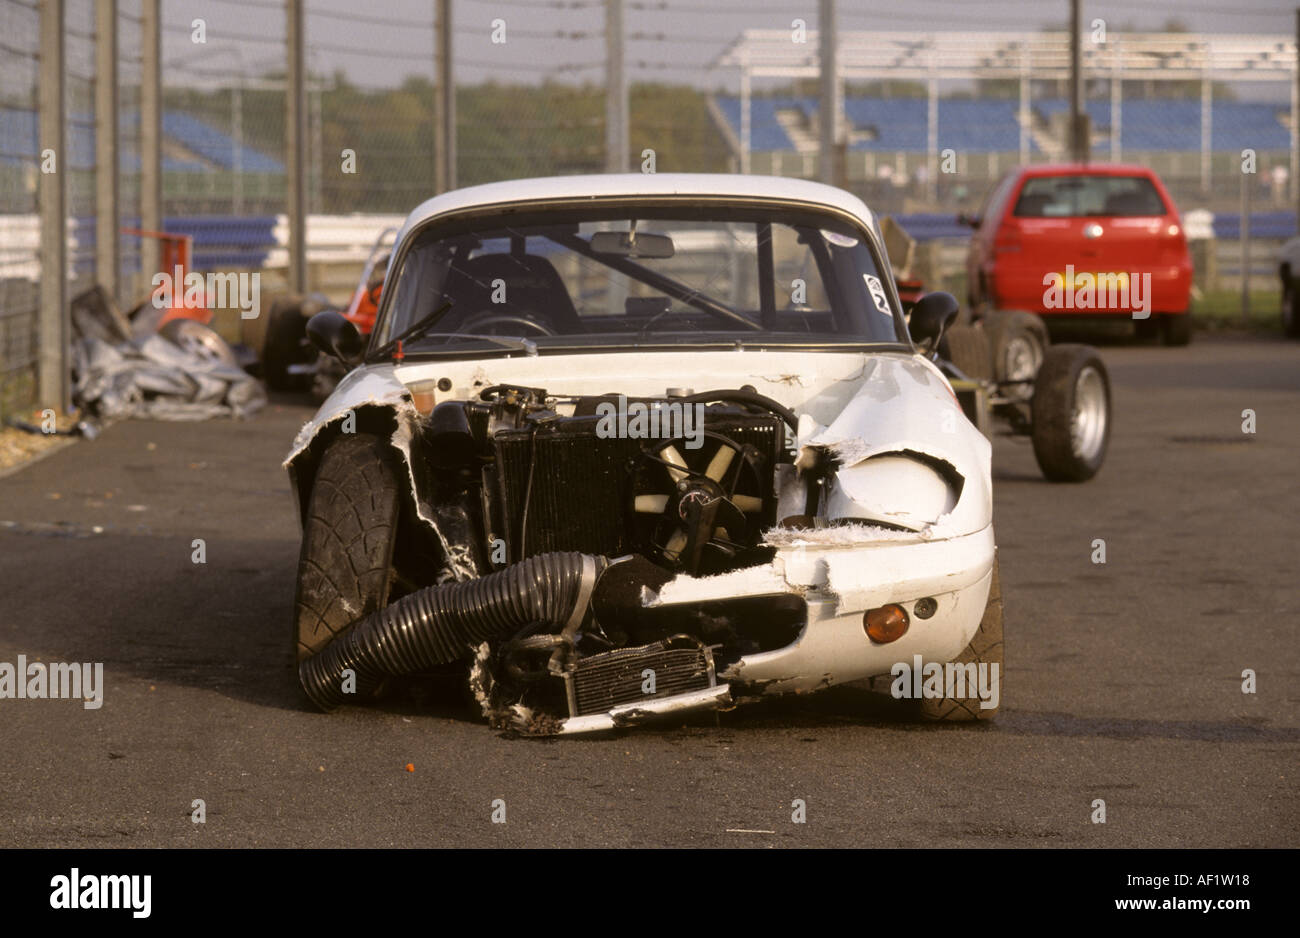 Car Crash Classic Car Stock Photo, Royalty Free Image: 4506903 - Alamy